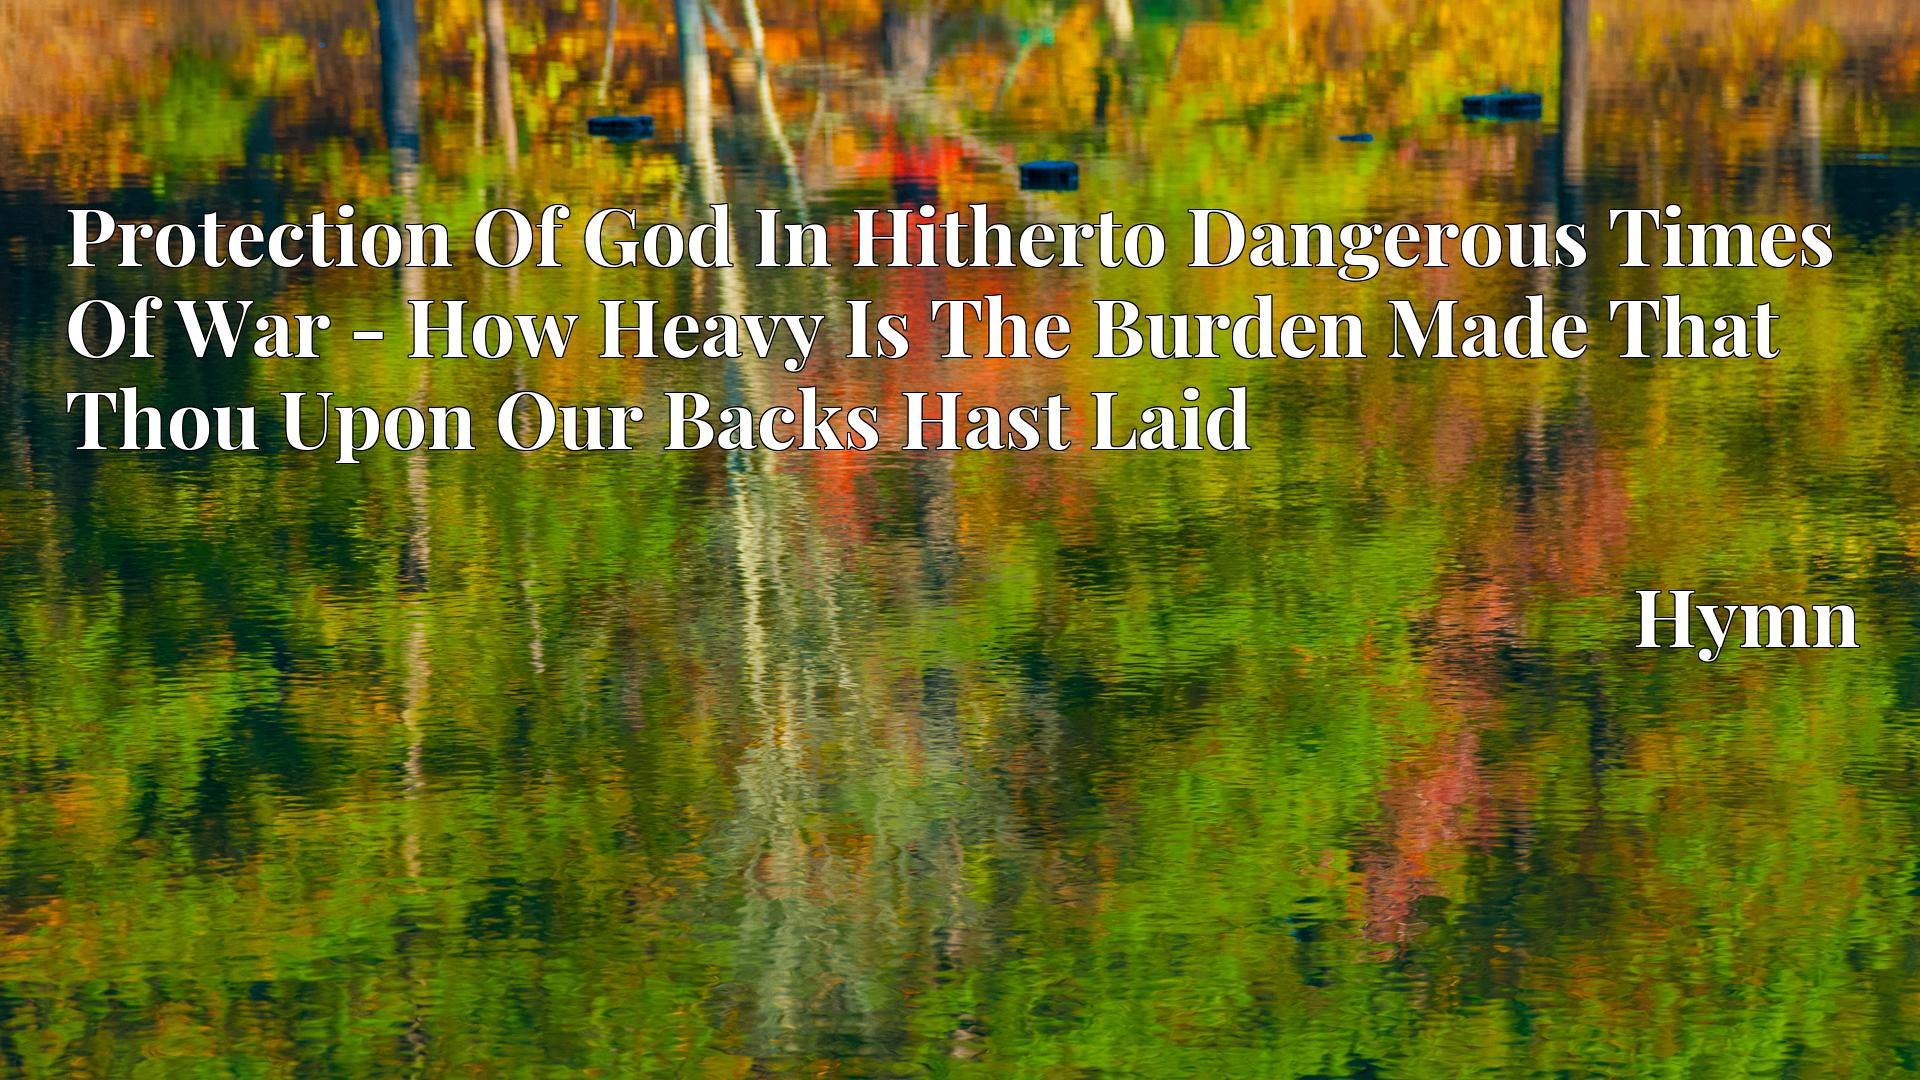 Protection Of God In Hitherto Dangerous Times Of War - How Heavy Is The Burden Made That Thou Upon Our Backs Hast Laid - Hymn